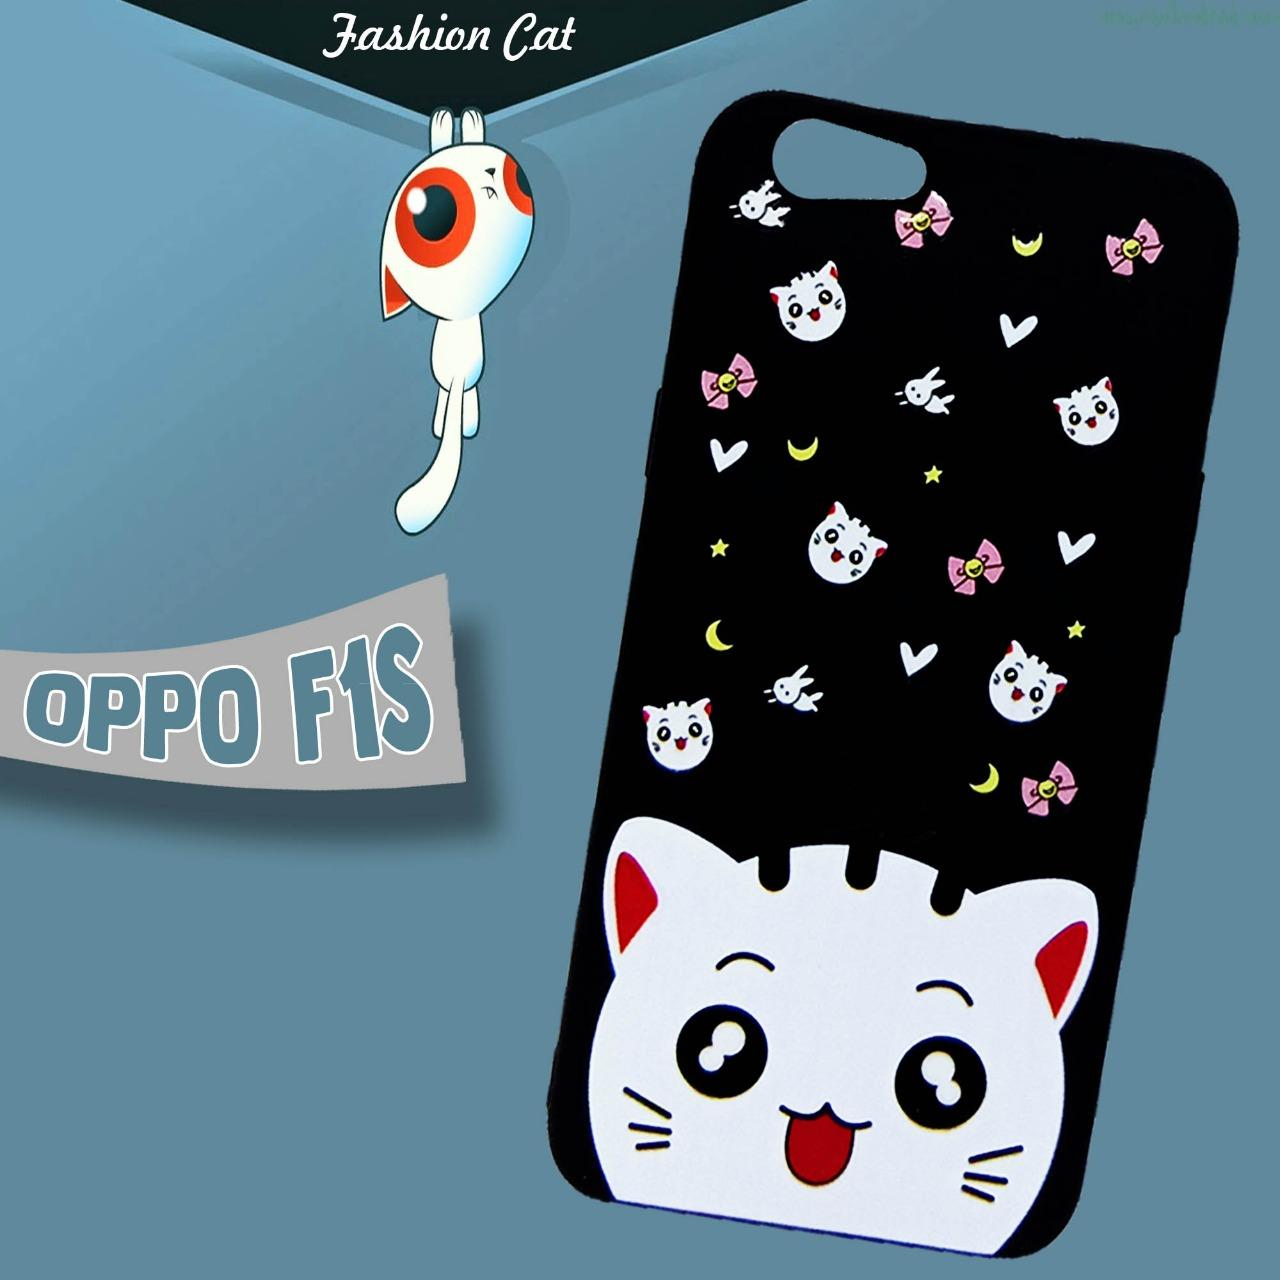 Softcase Fashion Cat Black Phone Case New For Oppo F1s